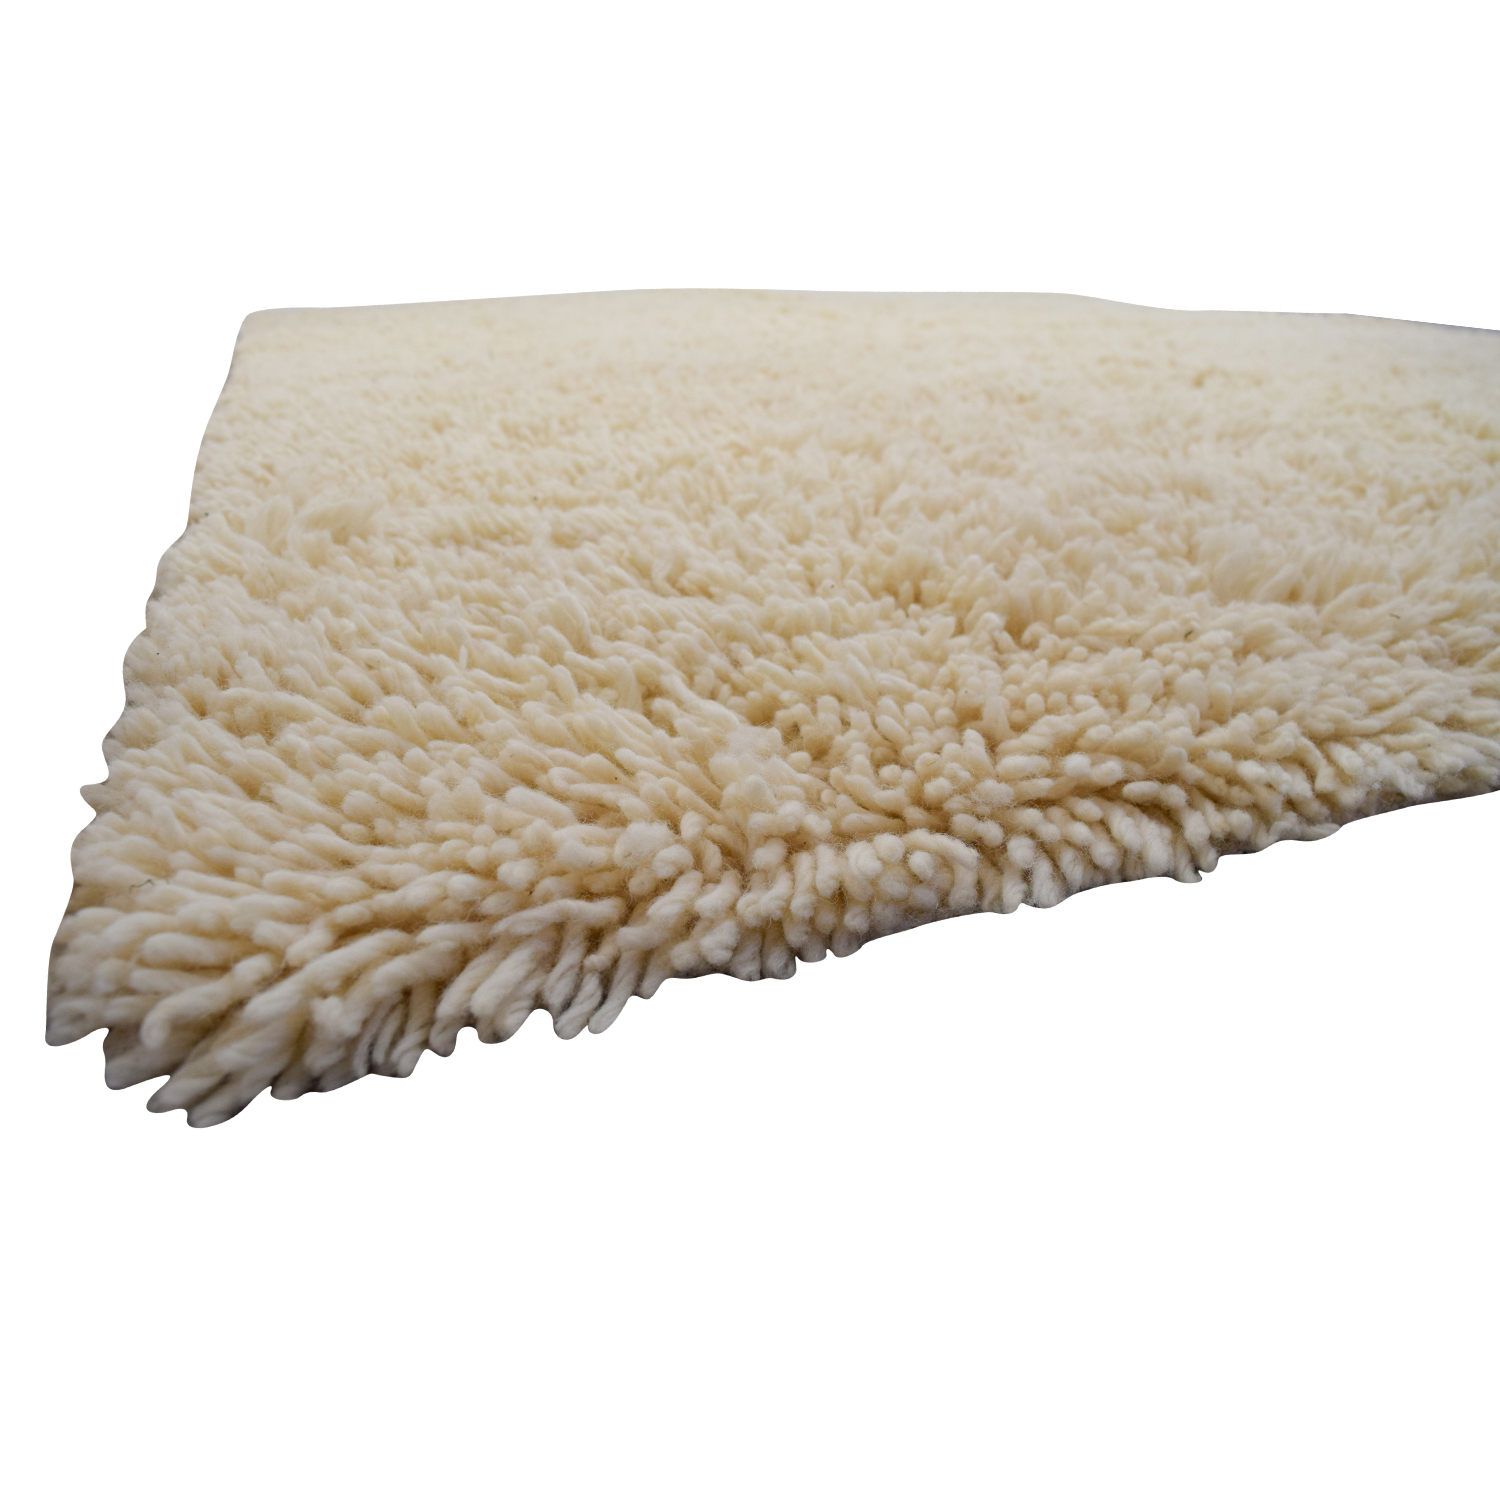 buy Antrim Rugs Cream Wool Calculator Shag Rug Antrim Rugs